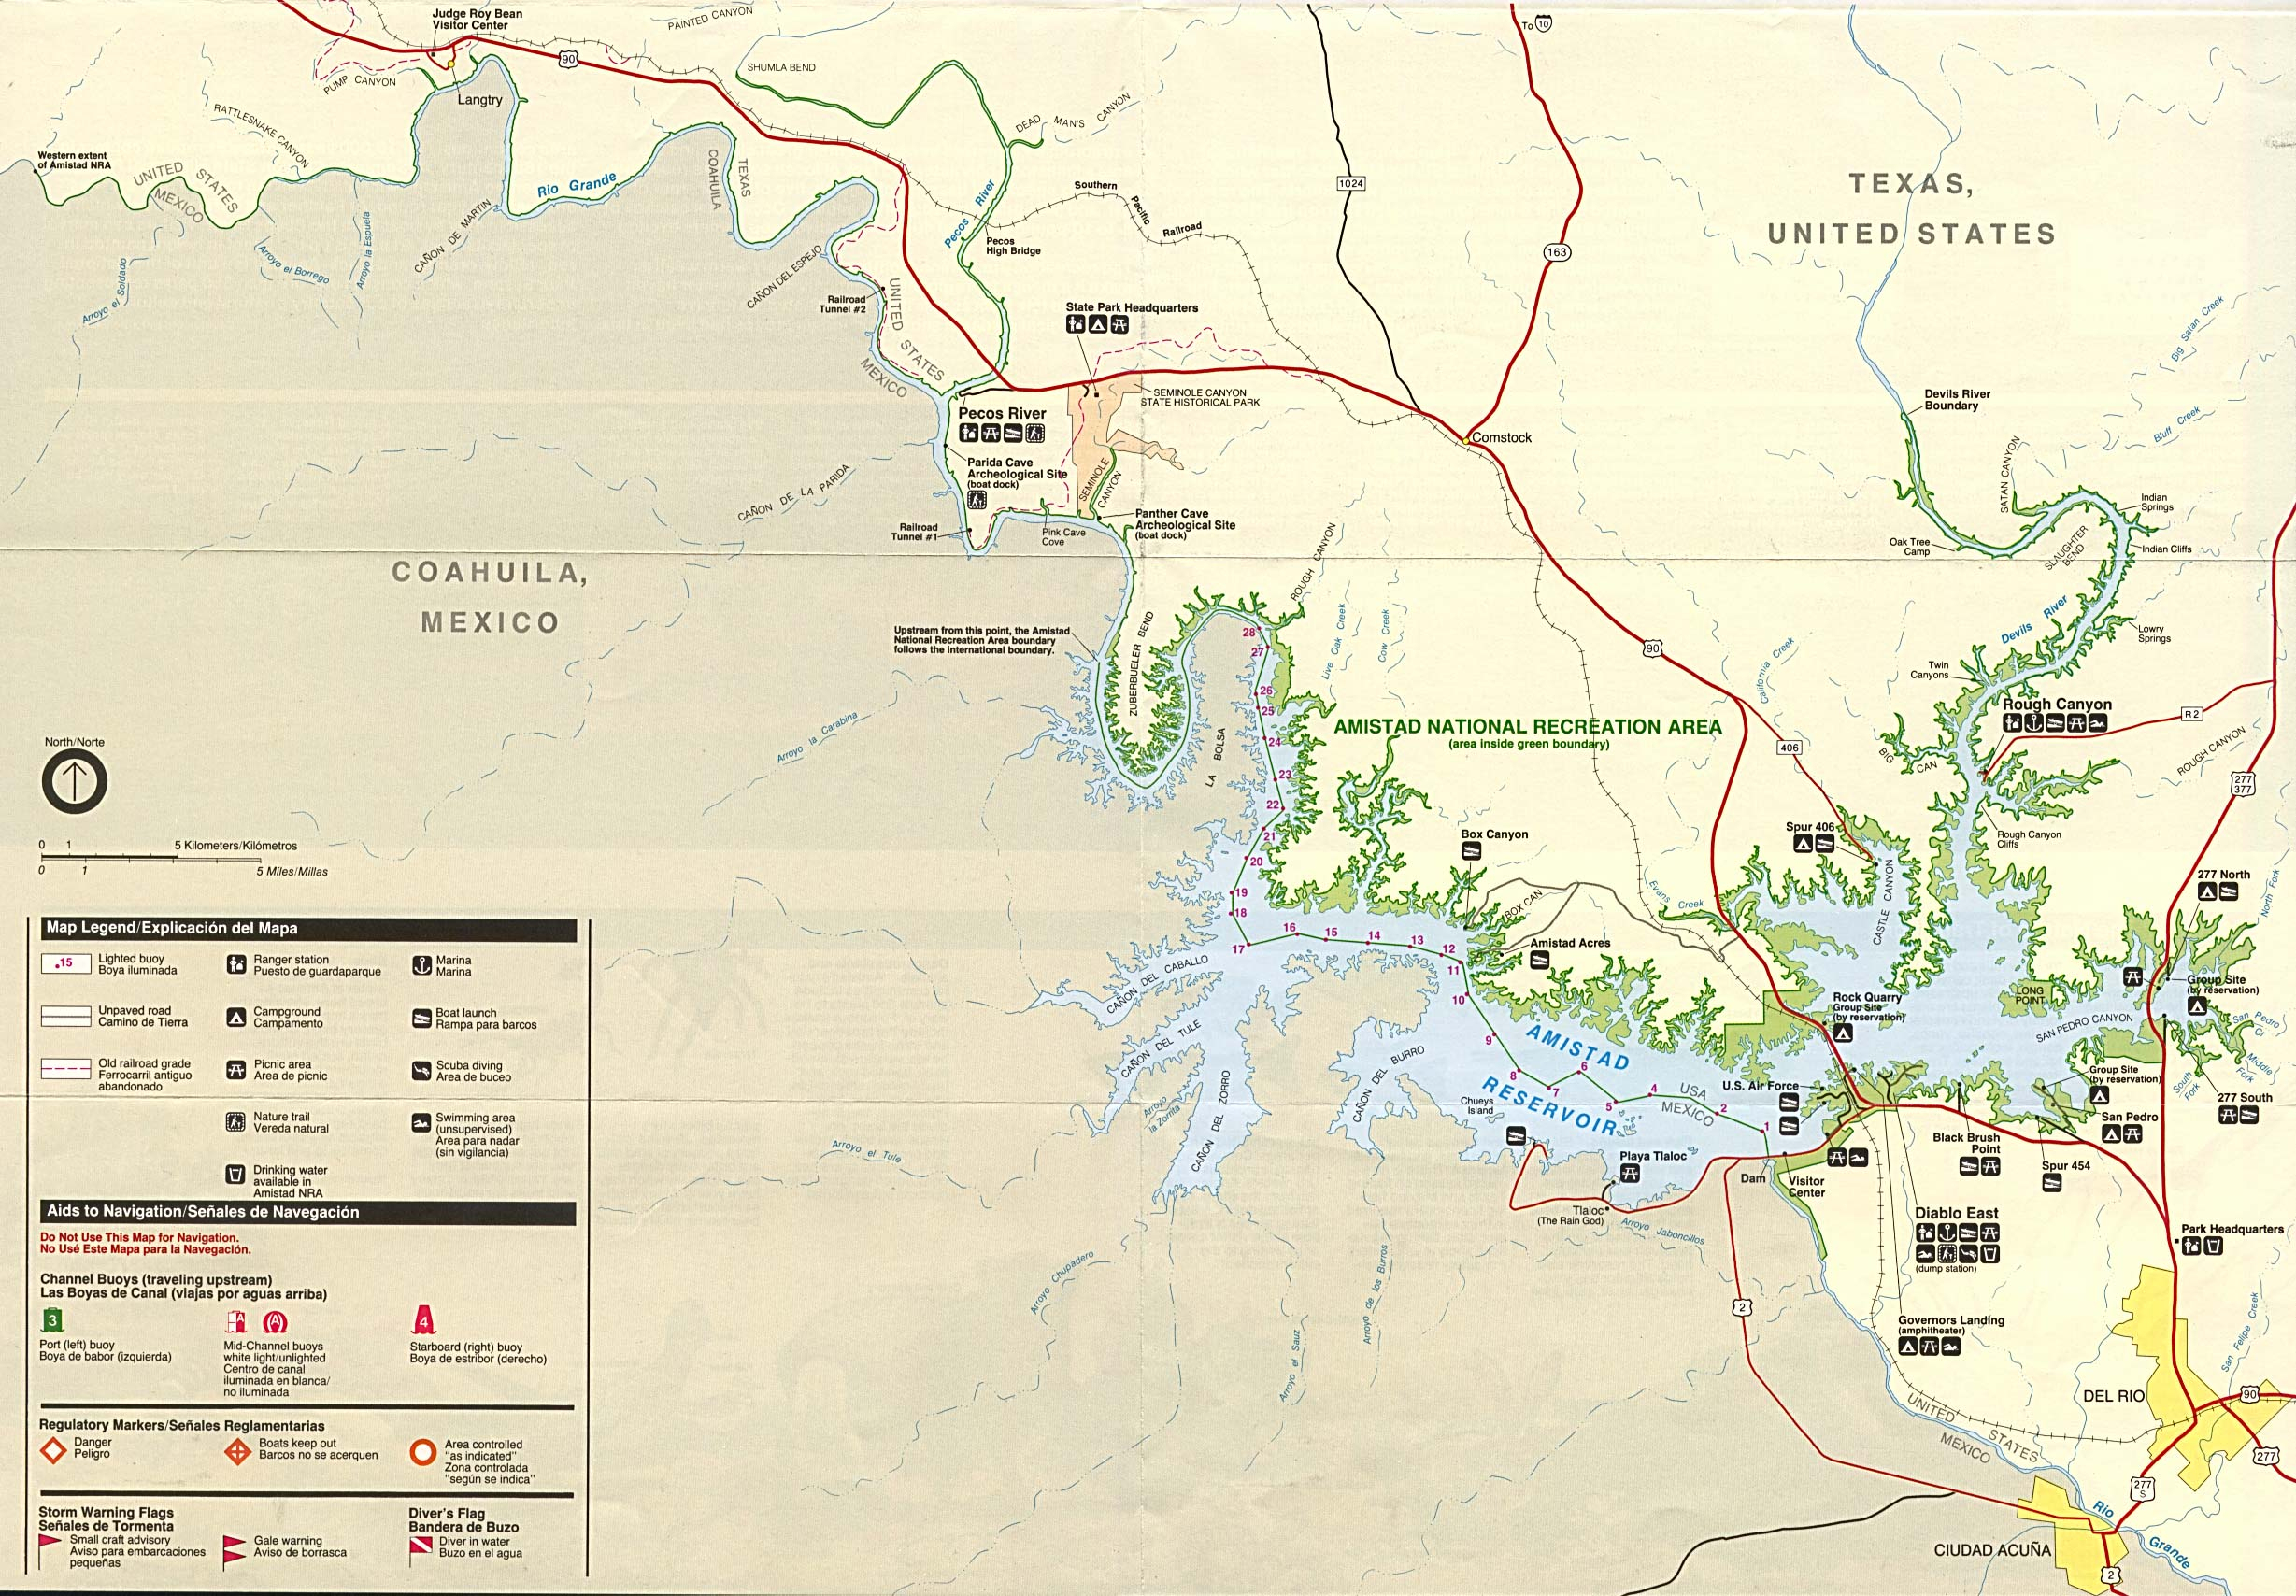 Texas State And National Park Maps - Perry-Castañeda Map Collection - Map Of All Texas State Parks